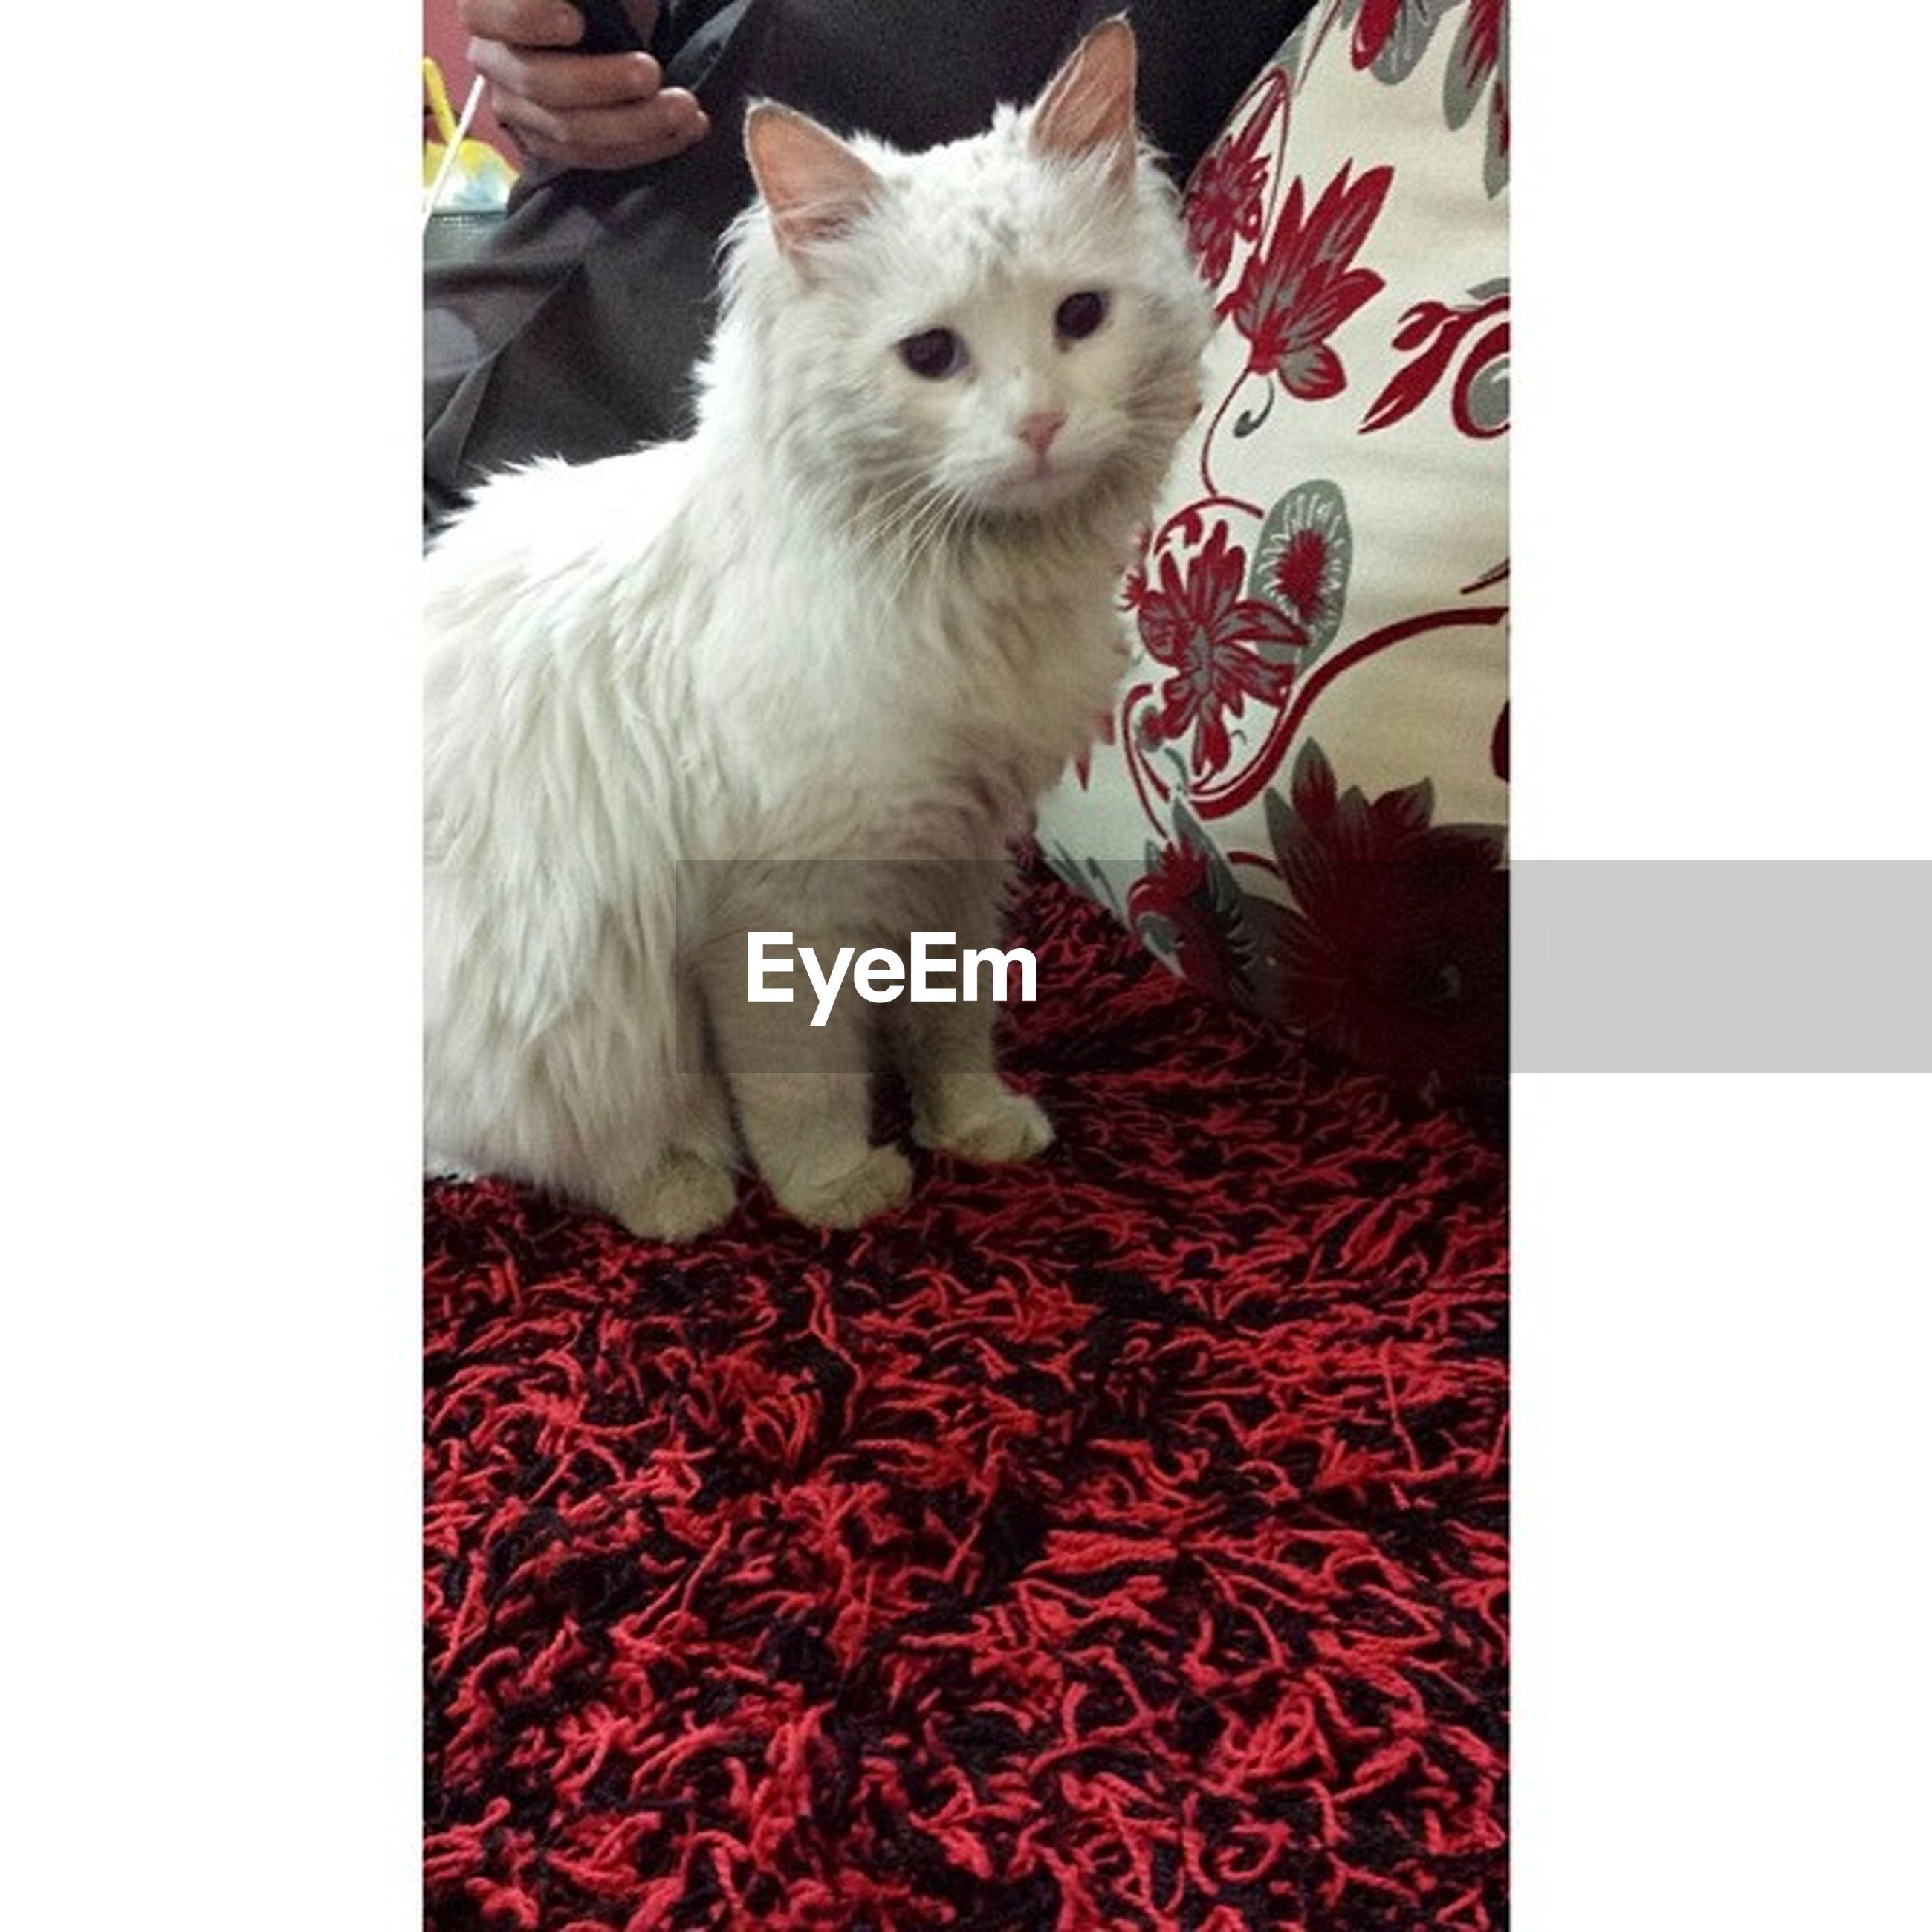 domestic animals, pets, animal themes, one animal, transfer print, mammal, auto post production filter, cat, dog, domestic cat, indoors, white color, portrait, red, looking at camera, vertebrate, feline, no people, relaxation, full length